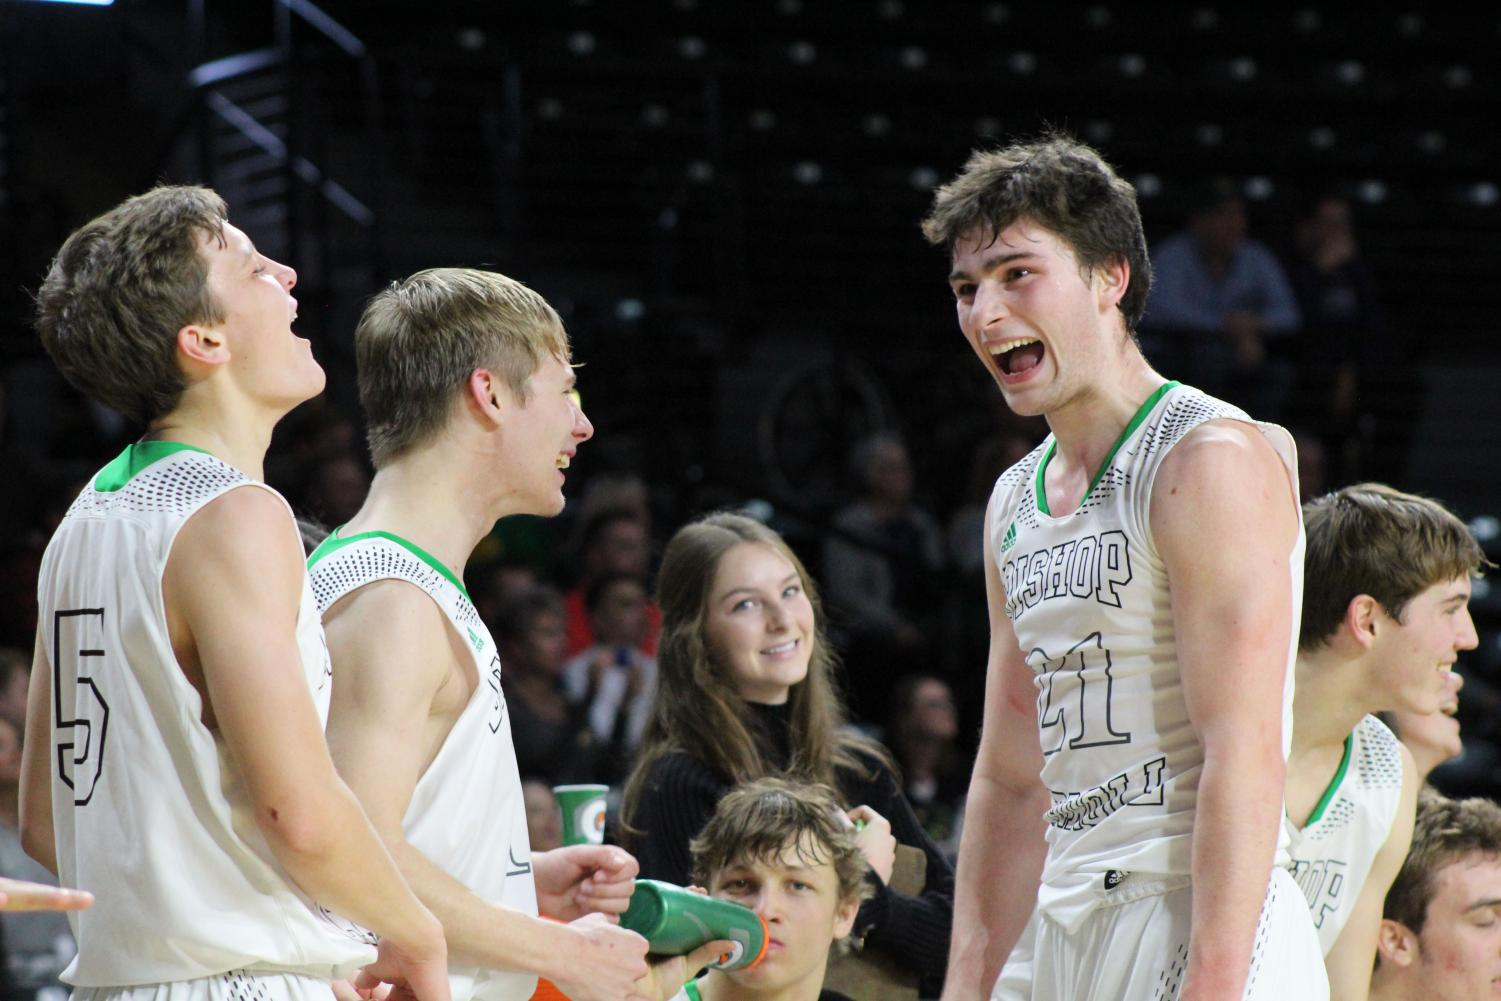 Star Guard Tanner Mans celebrates with his teammates after a huge win earlier in the season